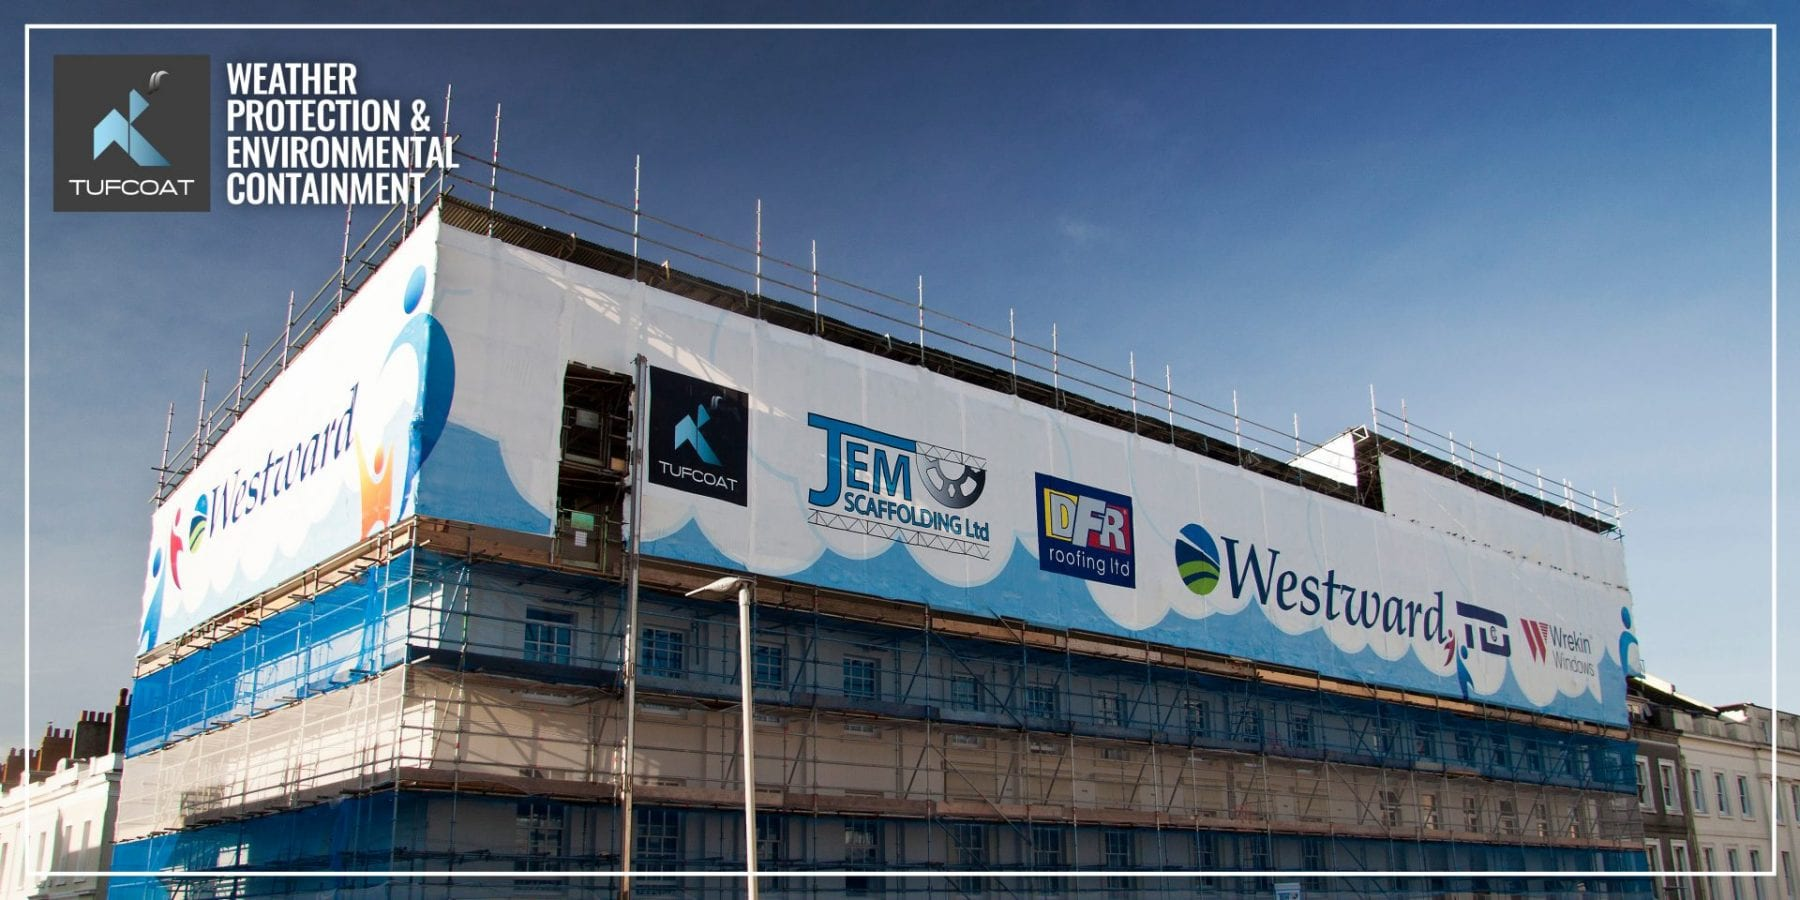 Printed Shrink-wrap Plymouth House Jem Scaffold Westward Housing